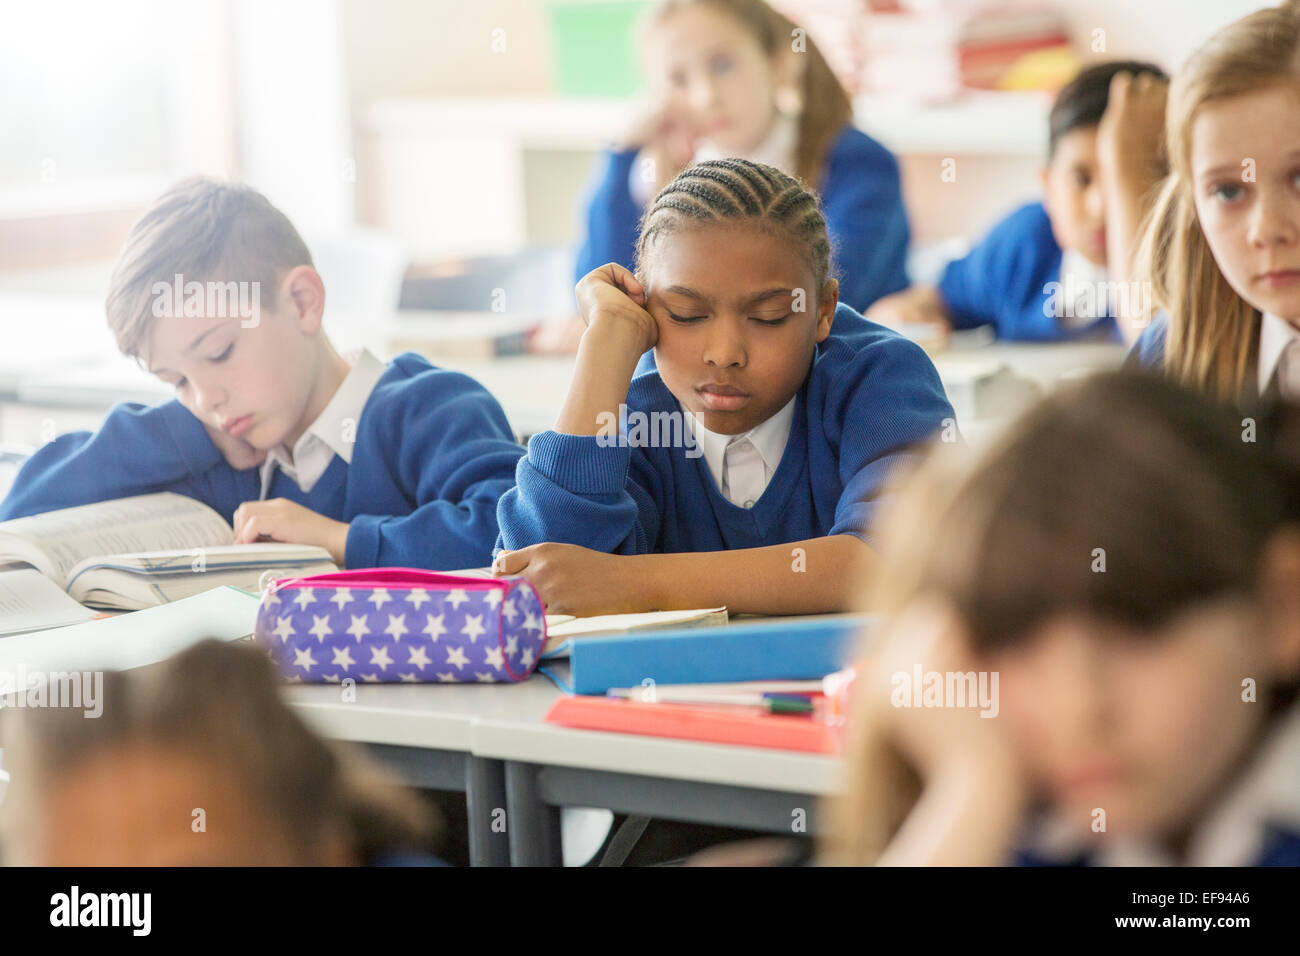 Elementary school children asleep and bored in classroom - Stock Image